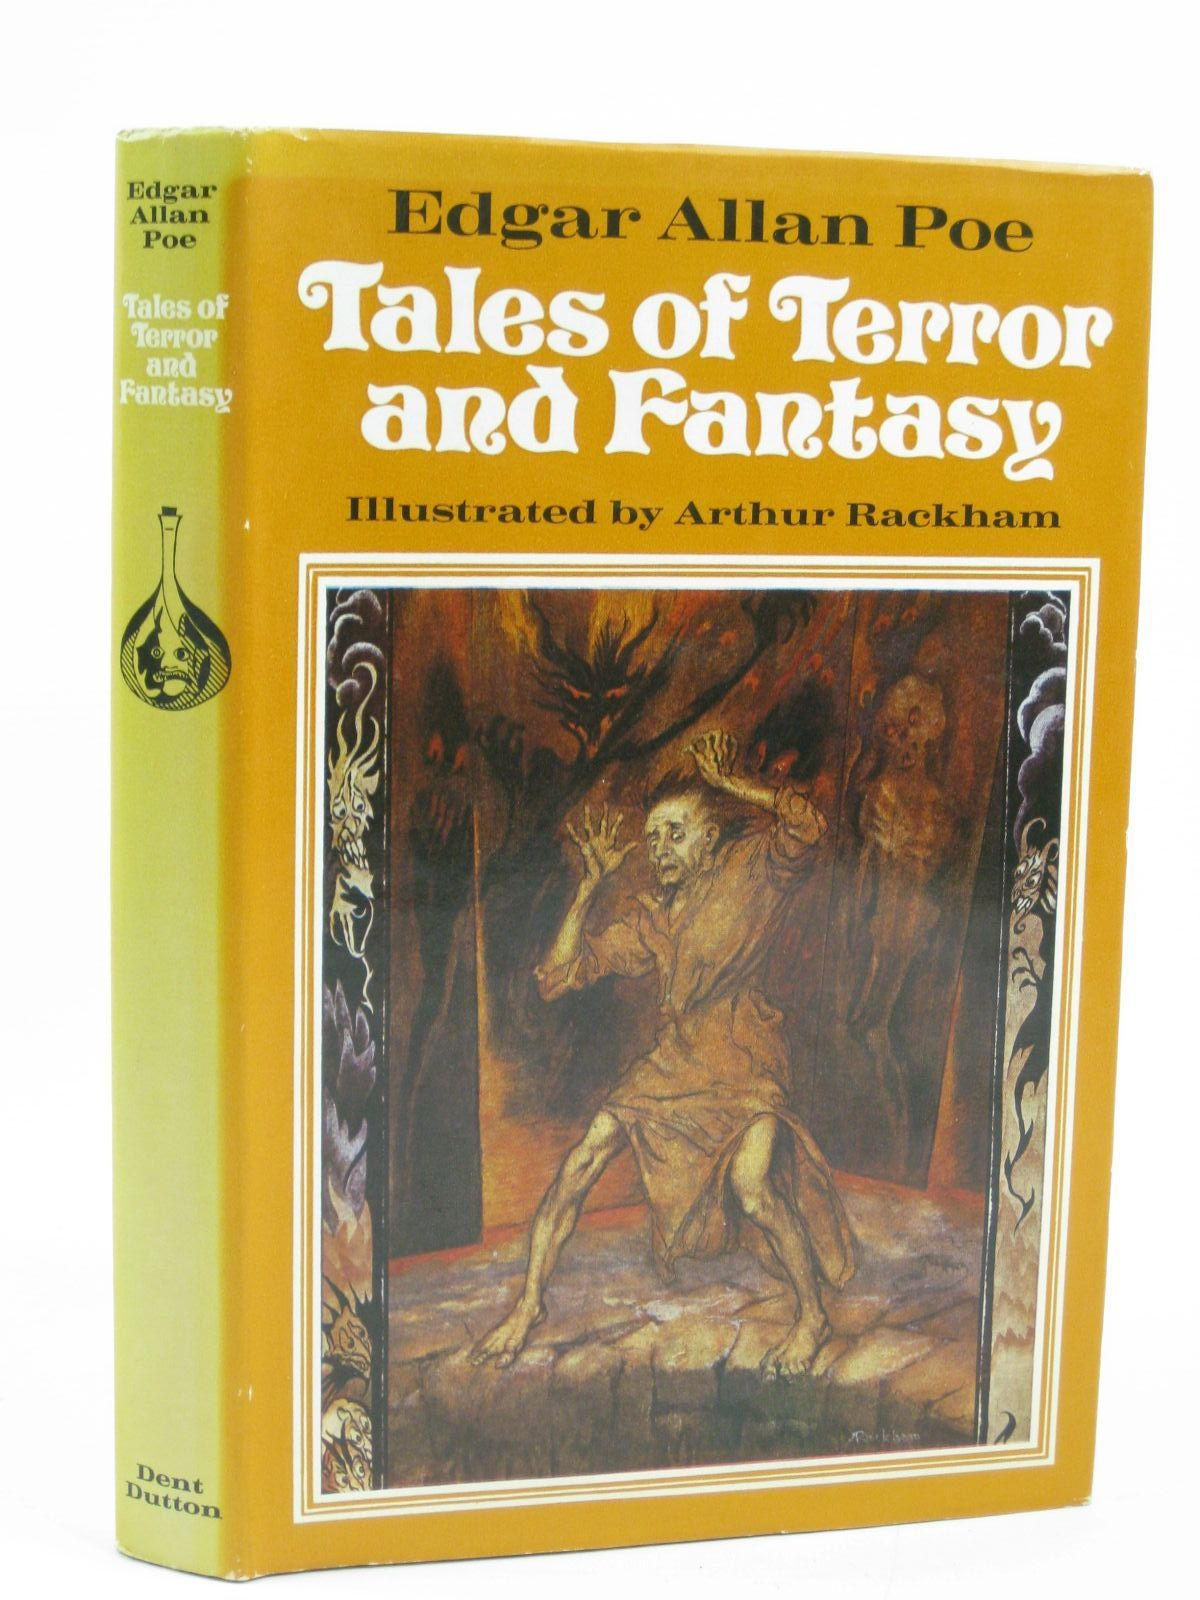 Photo of TALES OF TERROR AND FANTASY written by Poe, Edgar Allan illustrated by Rackham, Arthur published by J.M. Dent & Sons Ltd., E.P. Dutton & Co. Inc. (STOCK CODE: 1316297)  for sale by Stella & Rose's Books